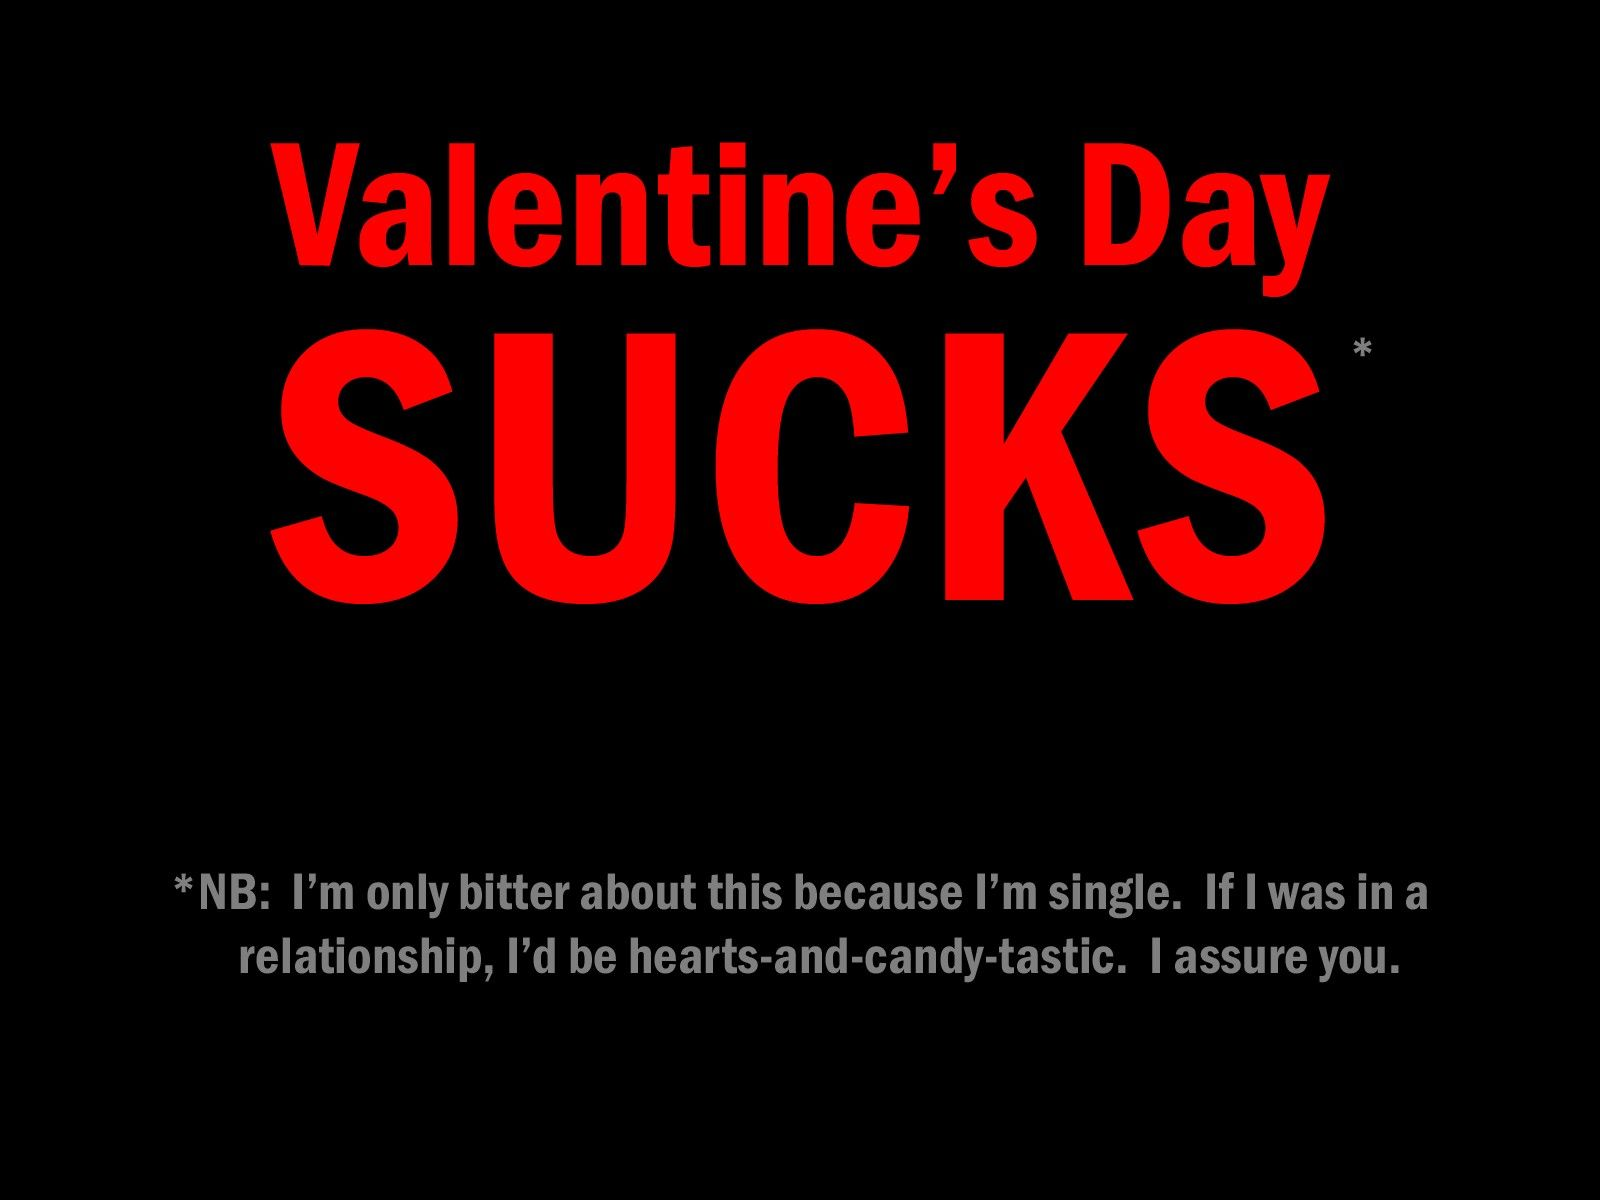 Single On Valentines Day Quotes Funny Valentines Day Cards Ideas  Wallpapers  Pinterest  Funny